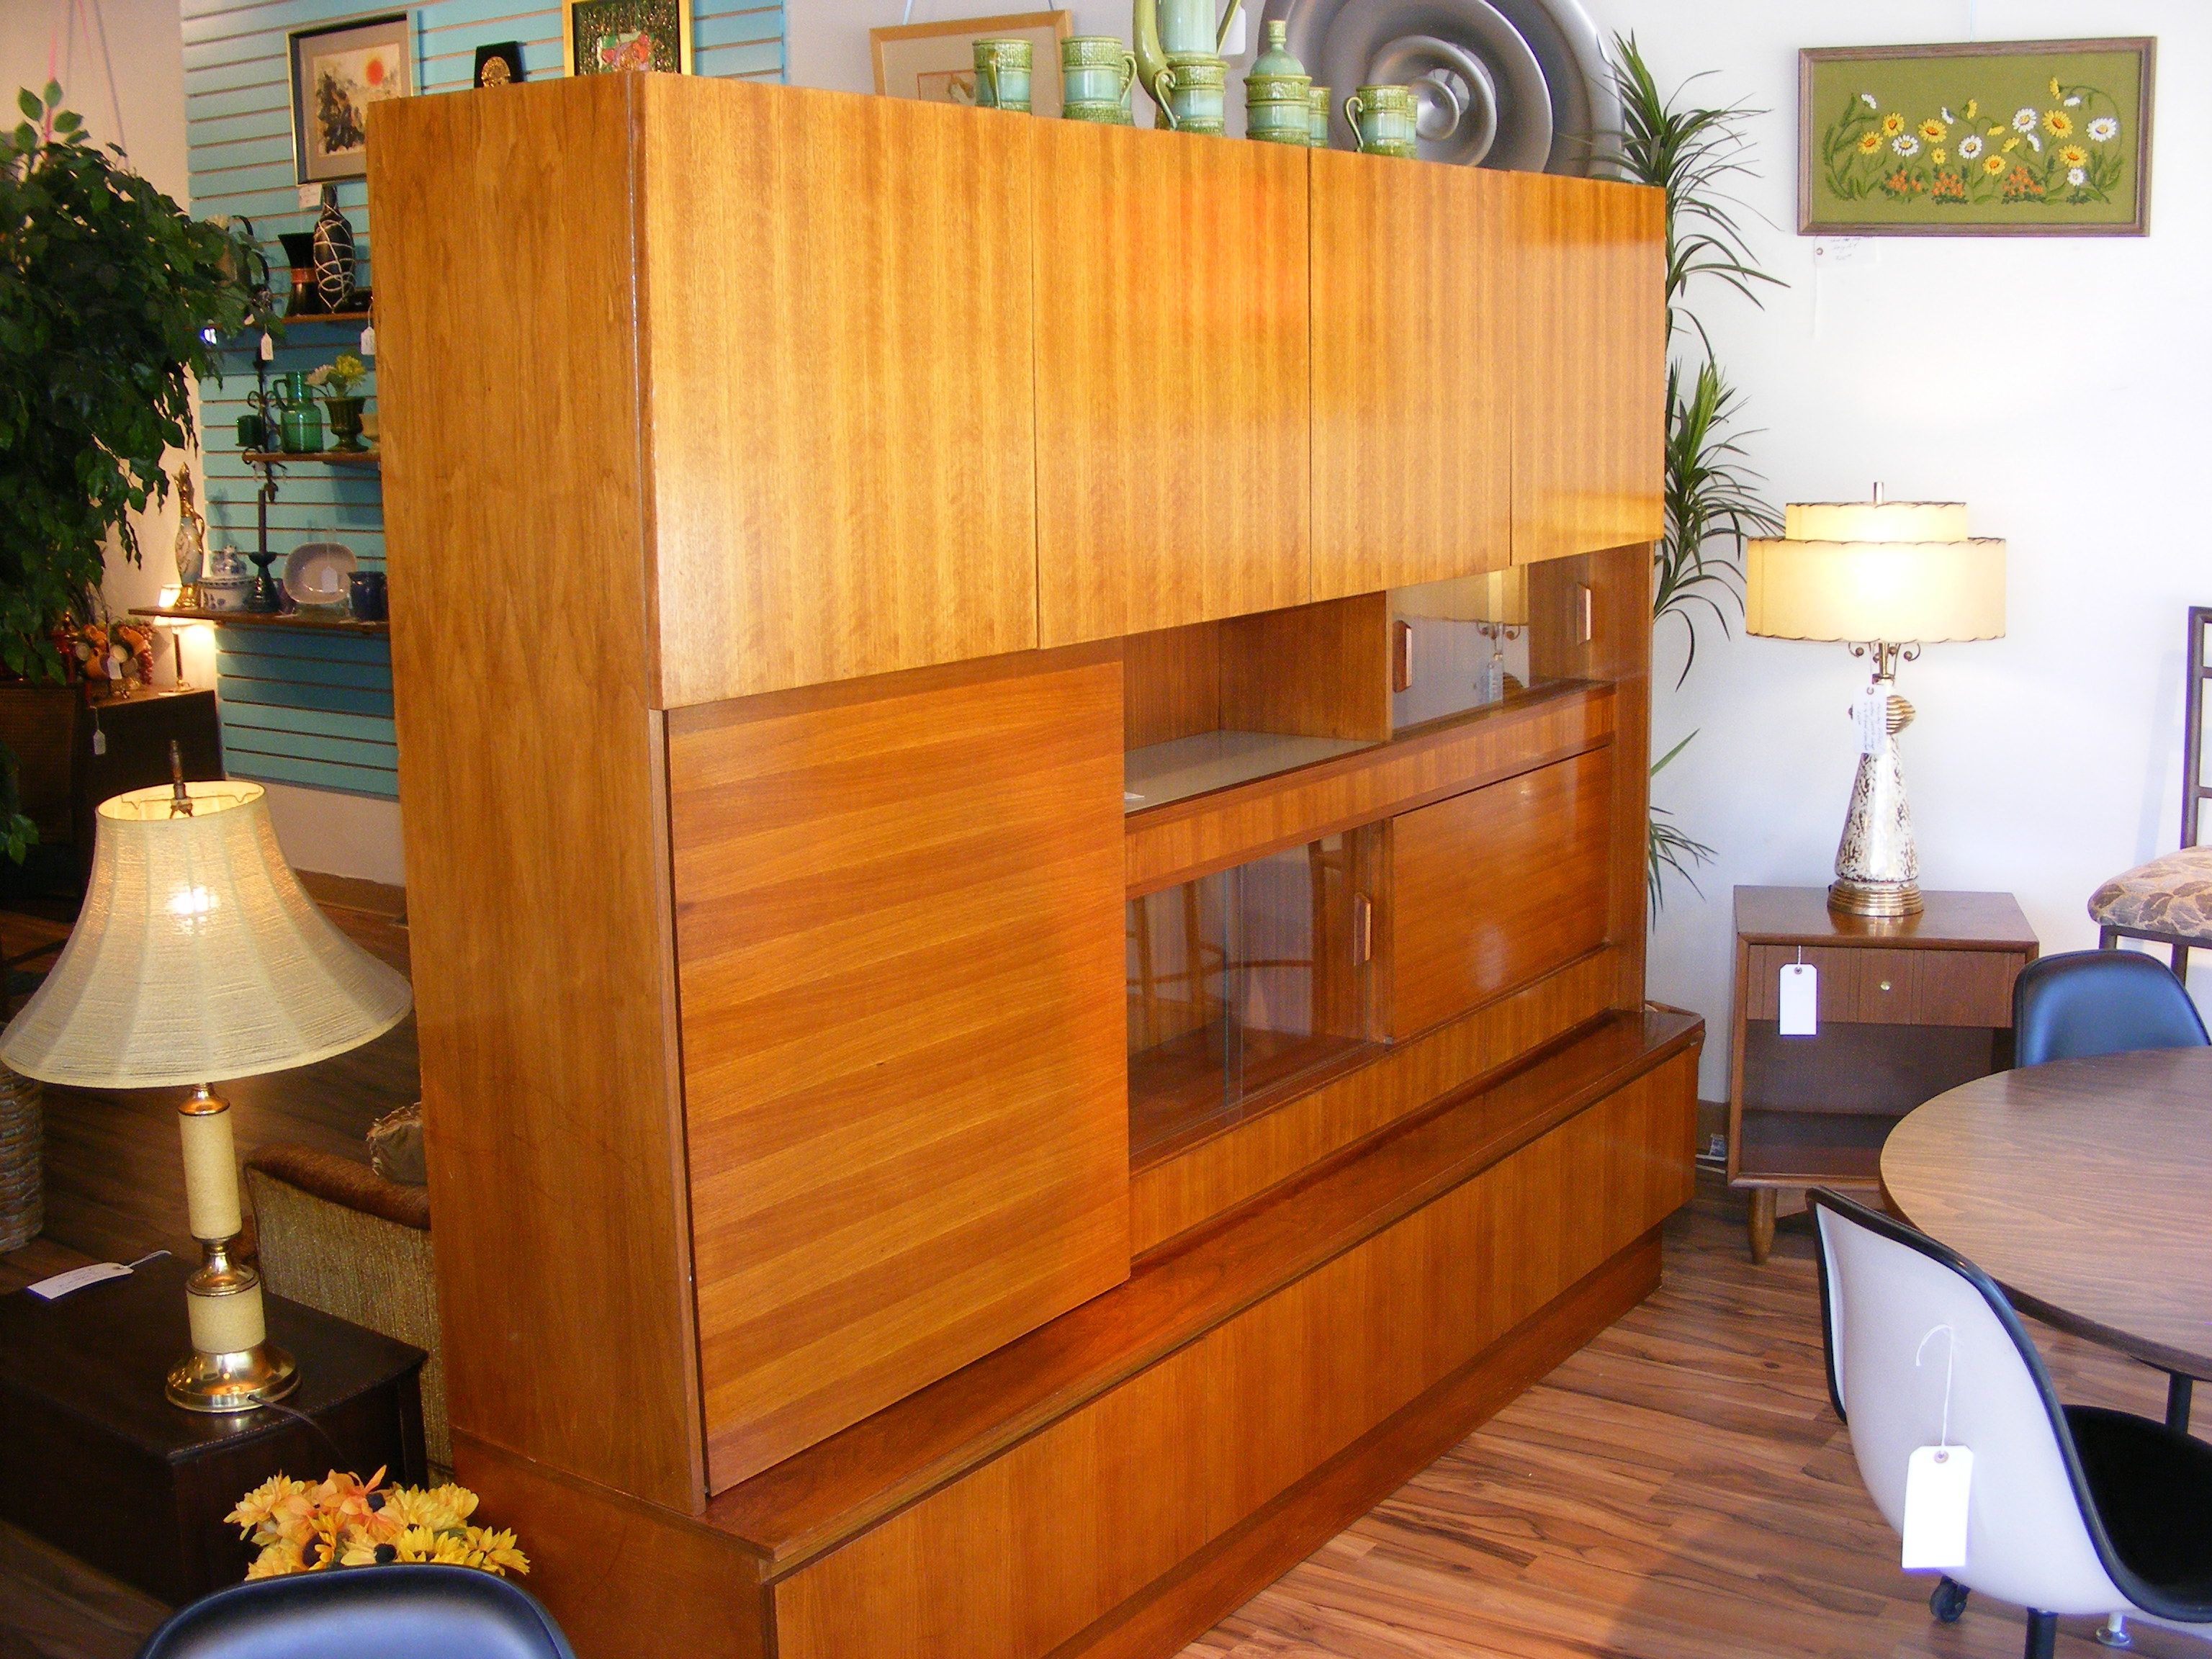 Modern storage area - Danish Modern Teak Wall Unit So Many Compartments And Storage Areas This Is A